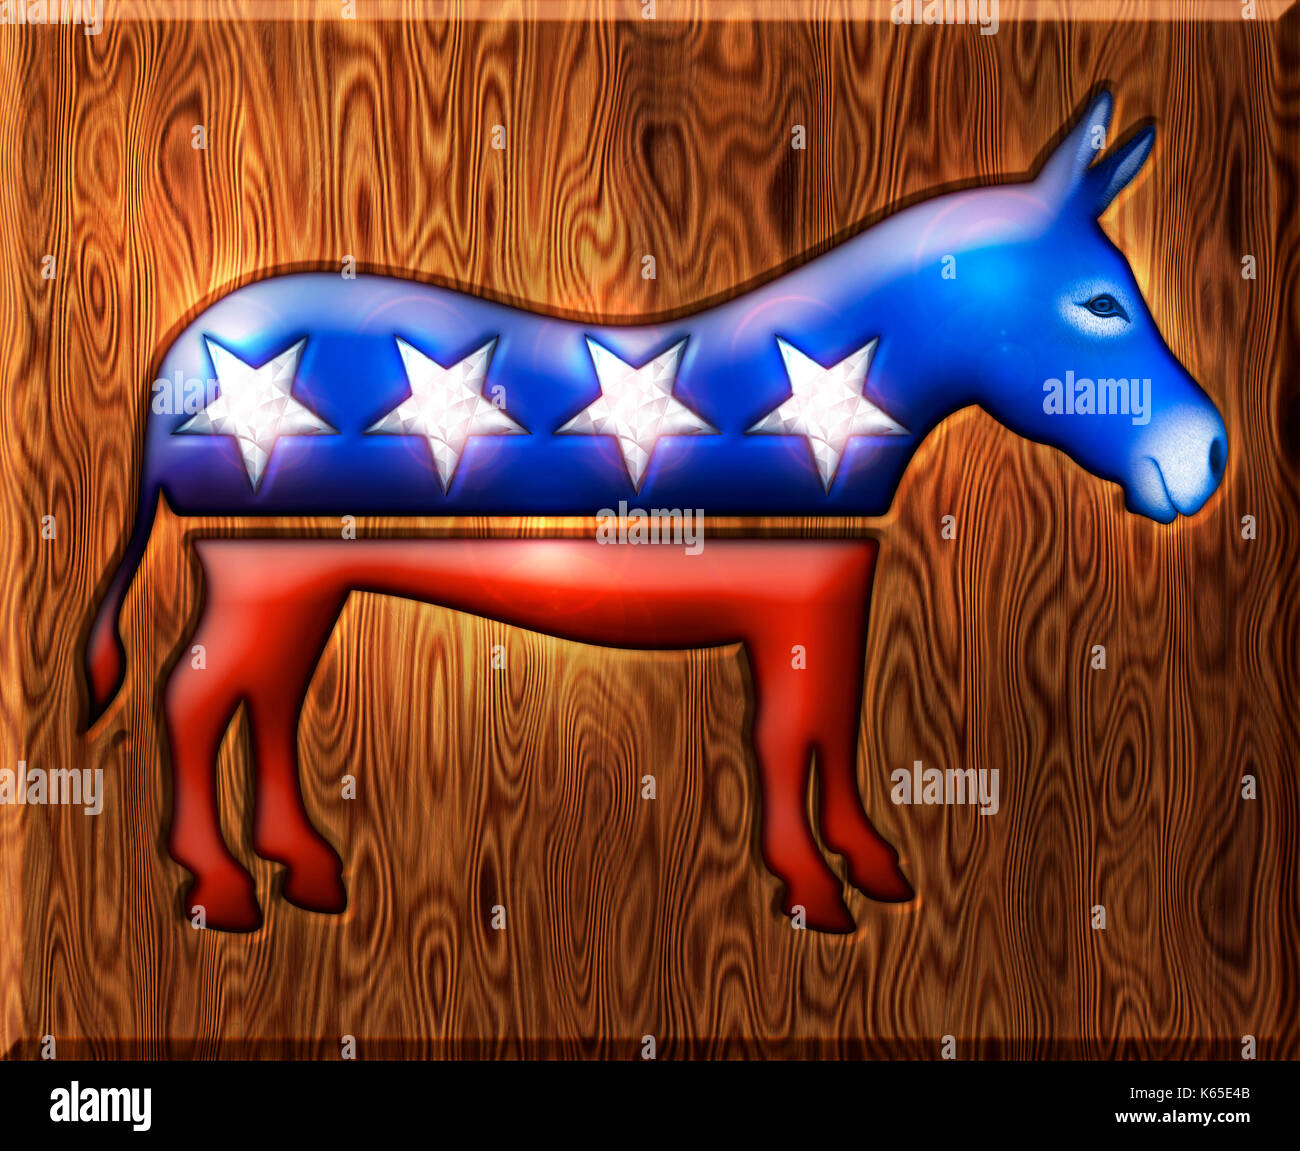 3D Democratic donkey symbol inlaid with diamond stars and embedded in a wooden base. - Stock Image